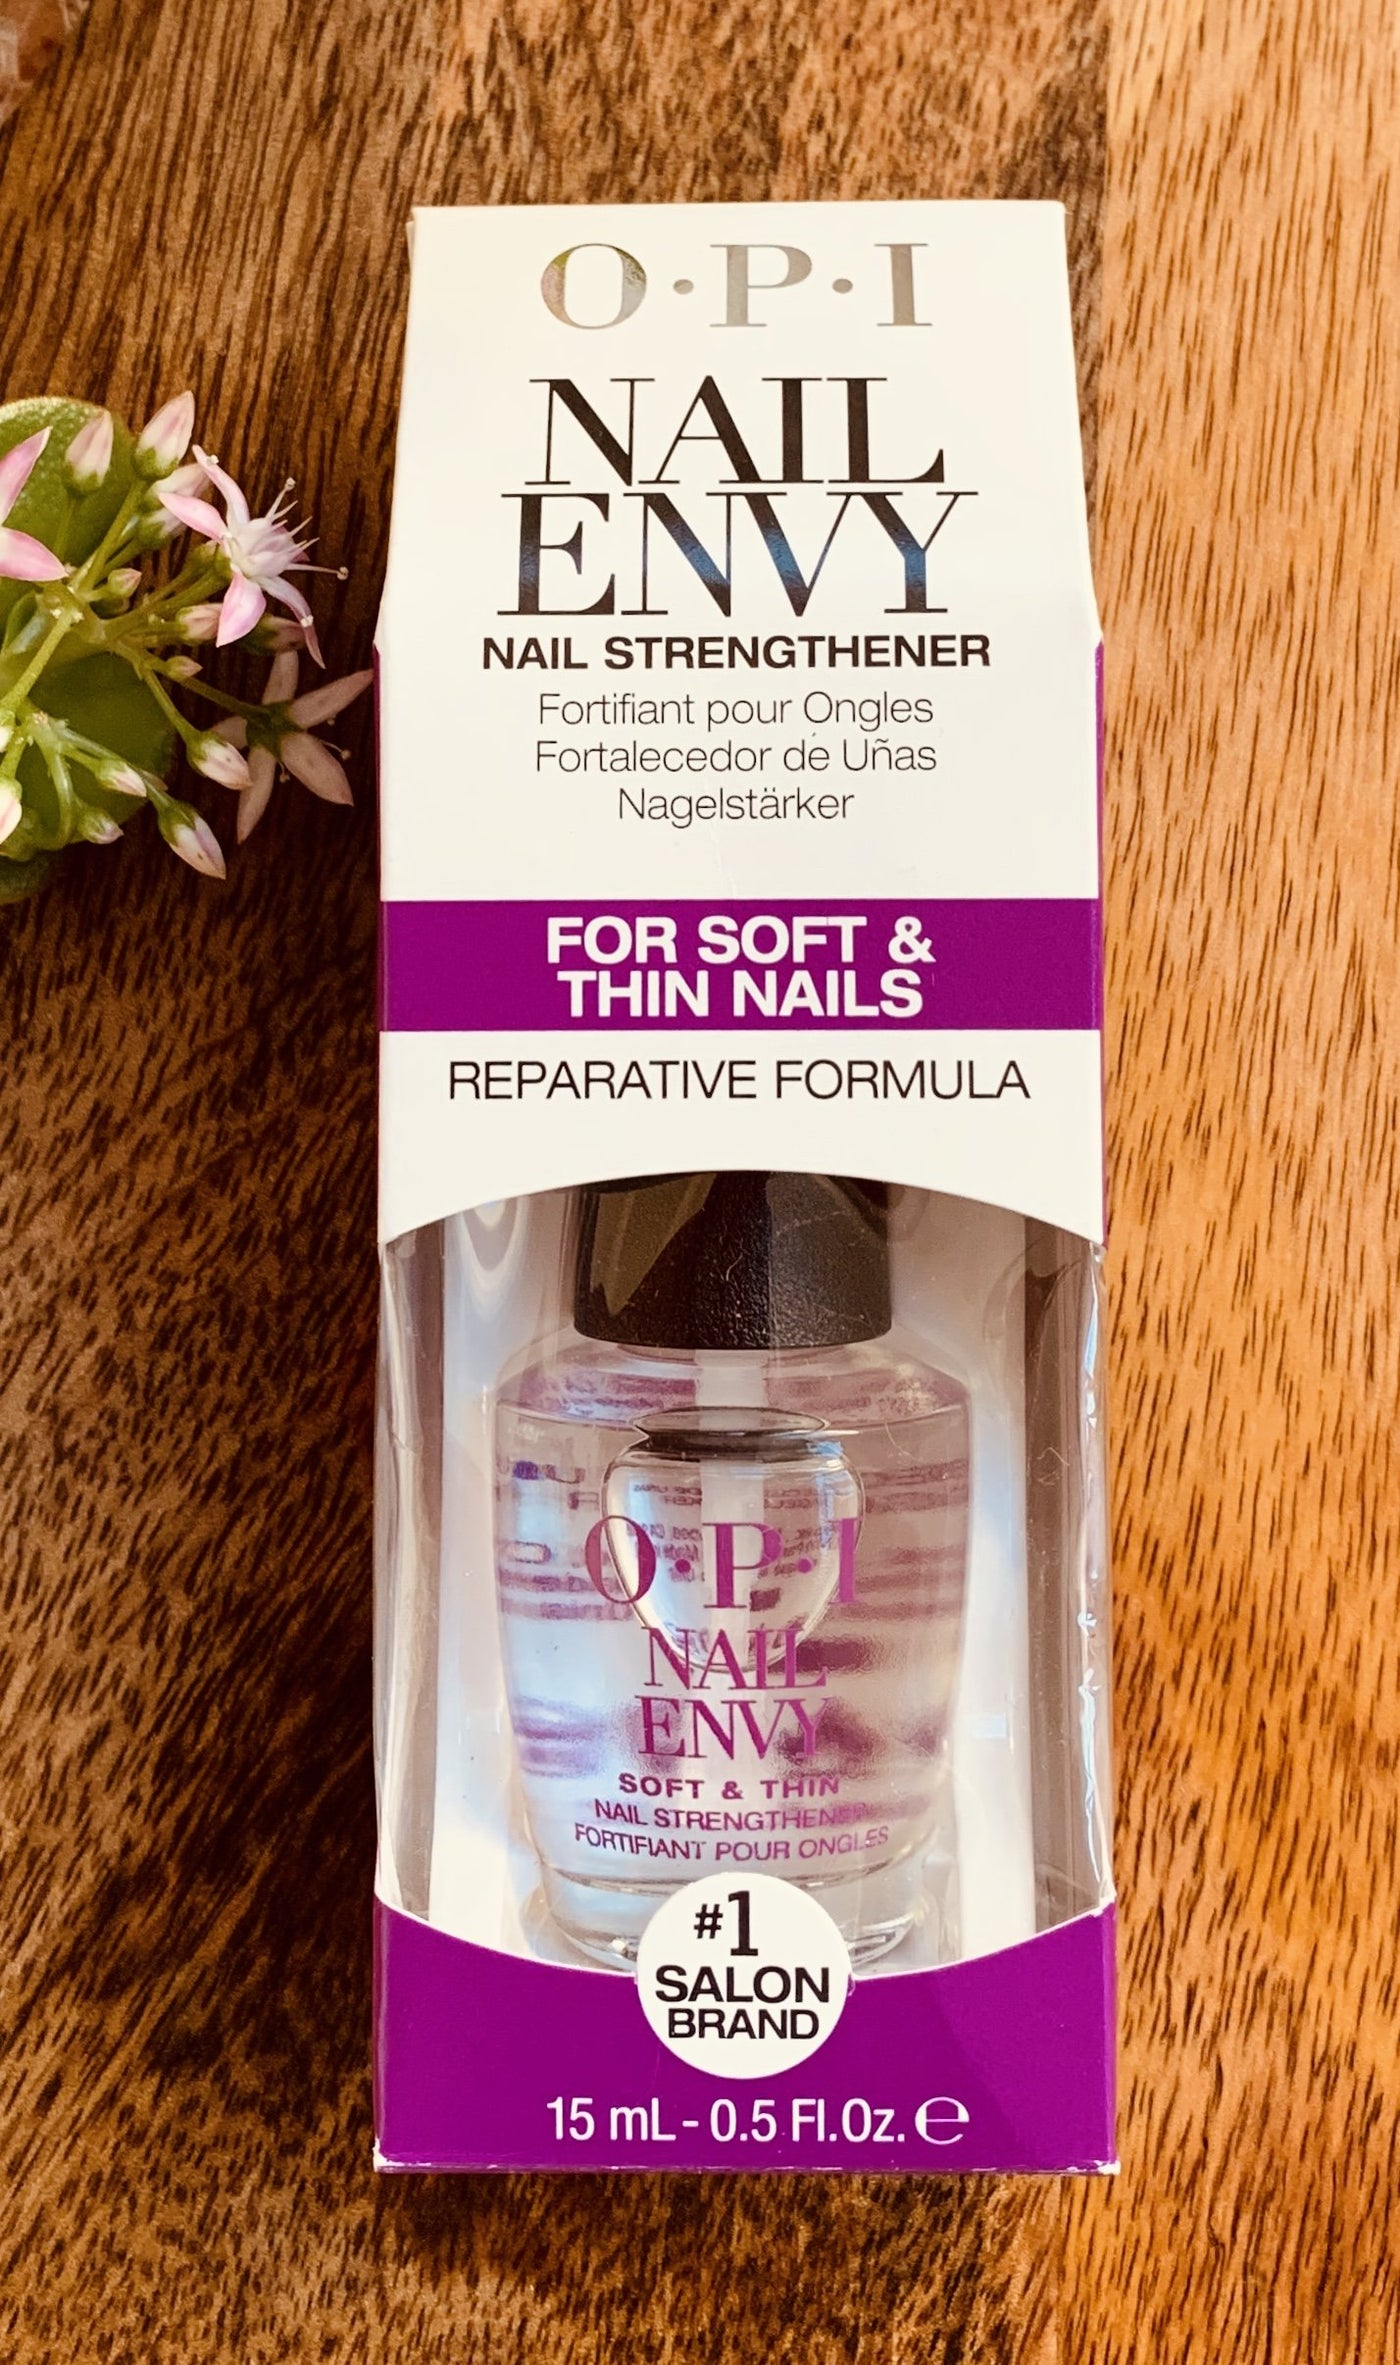 OPI Nail Envy Nail Strengthener for Soft & Thin Nails 15mL